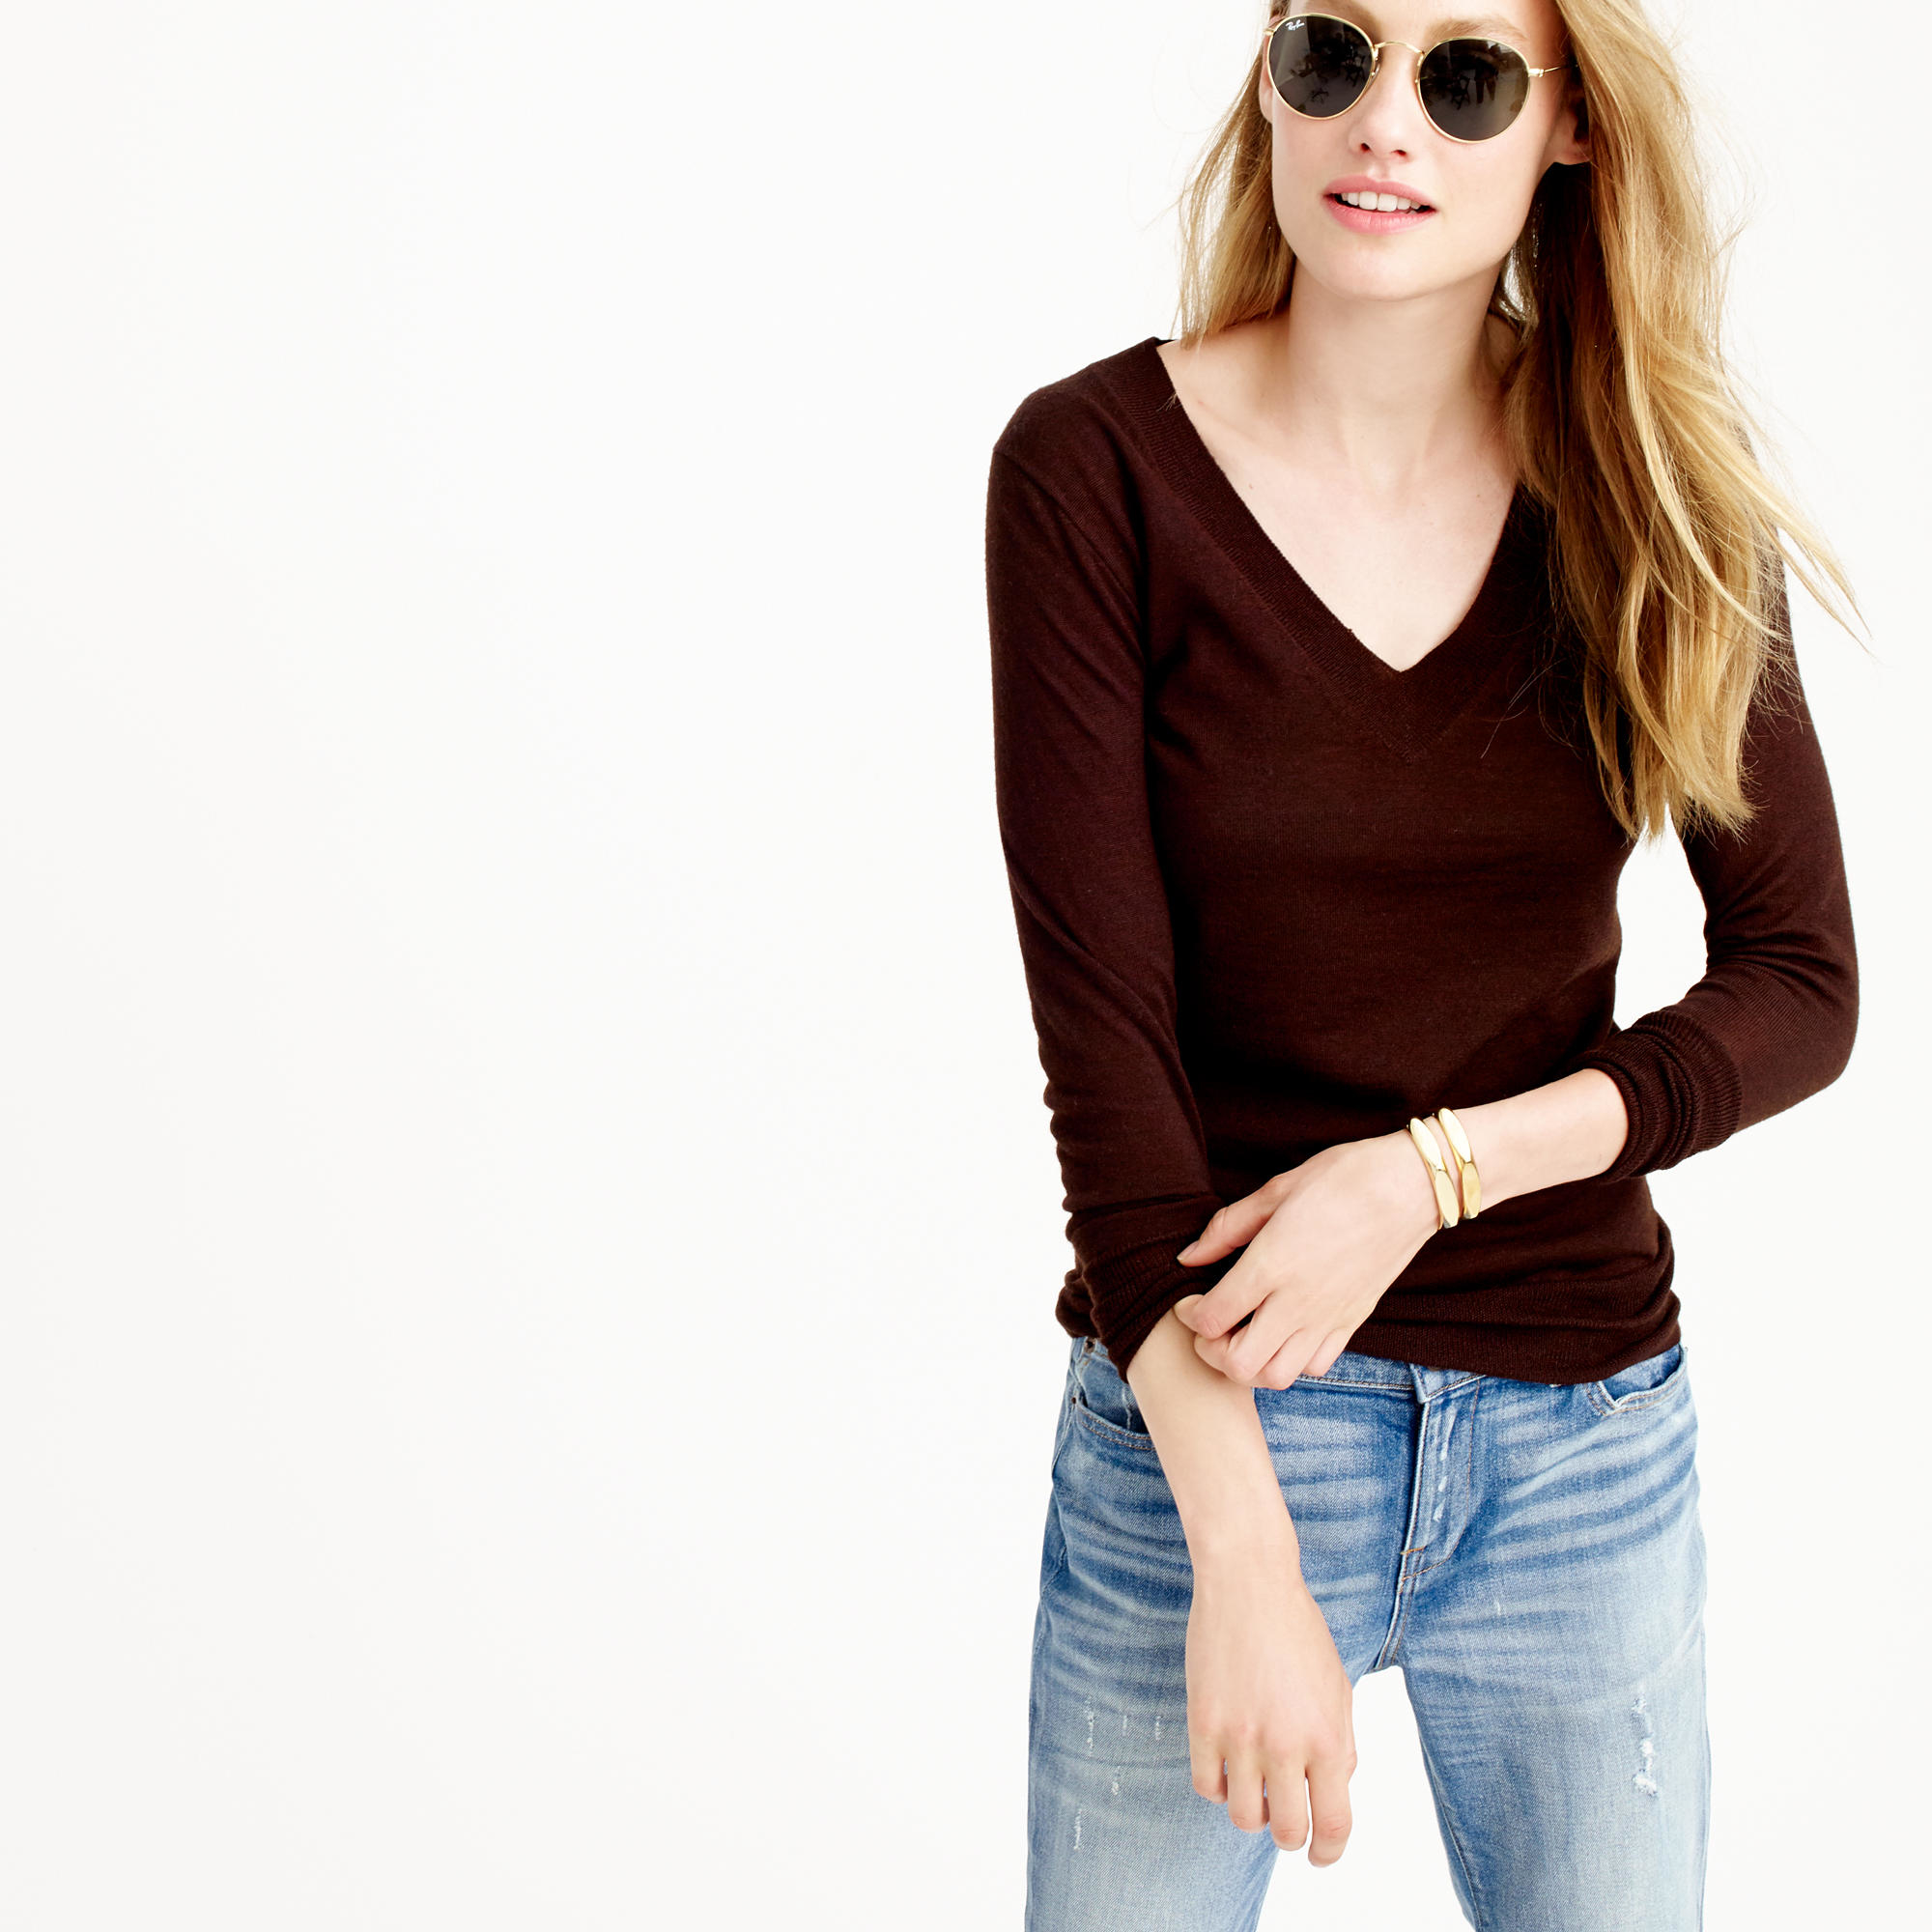 J.crew Merino Wool V-neck Sweater in Brown | Lyst